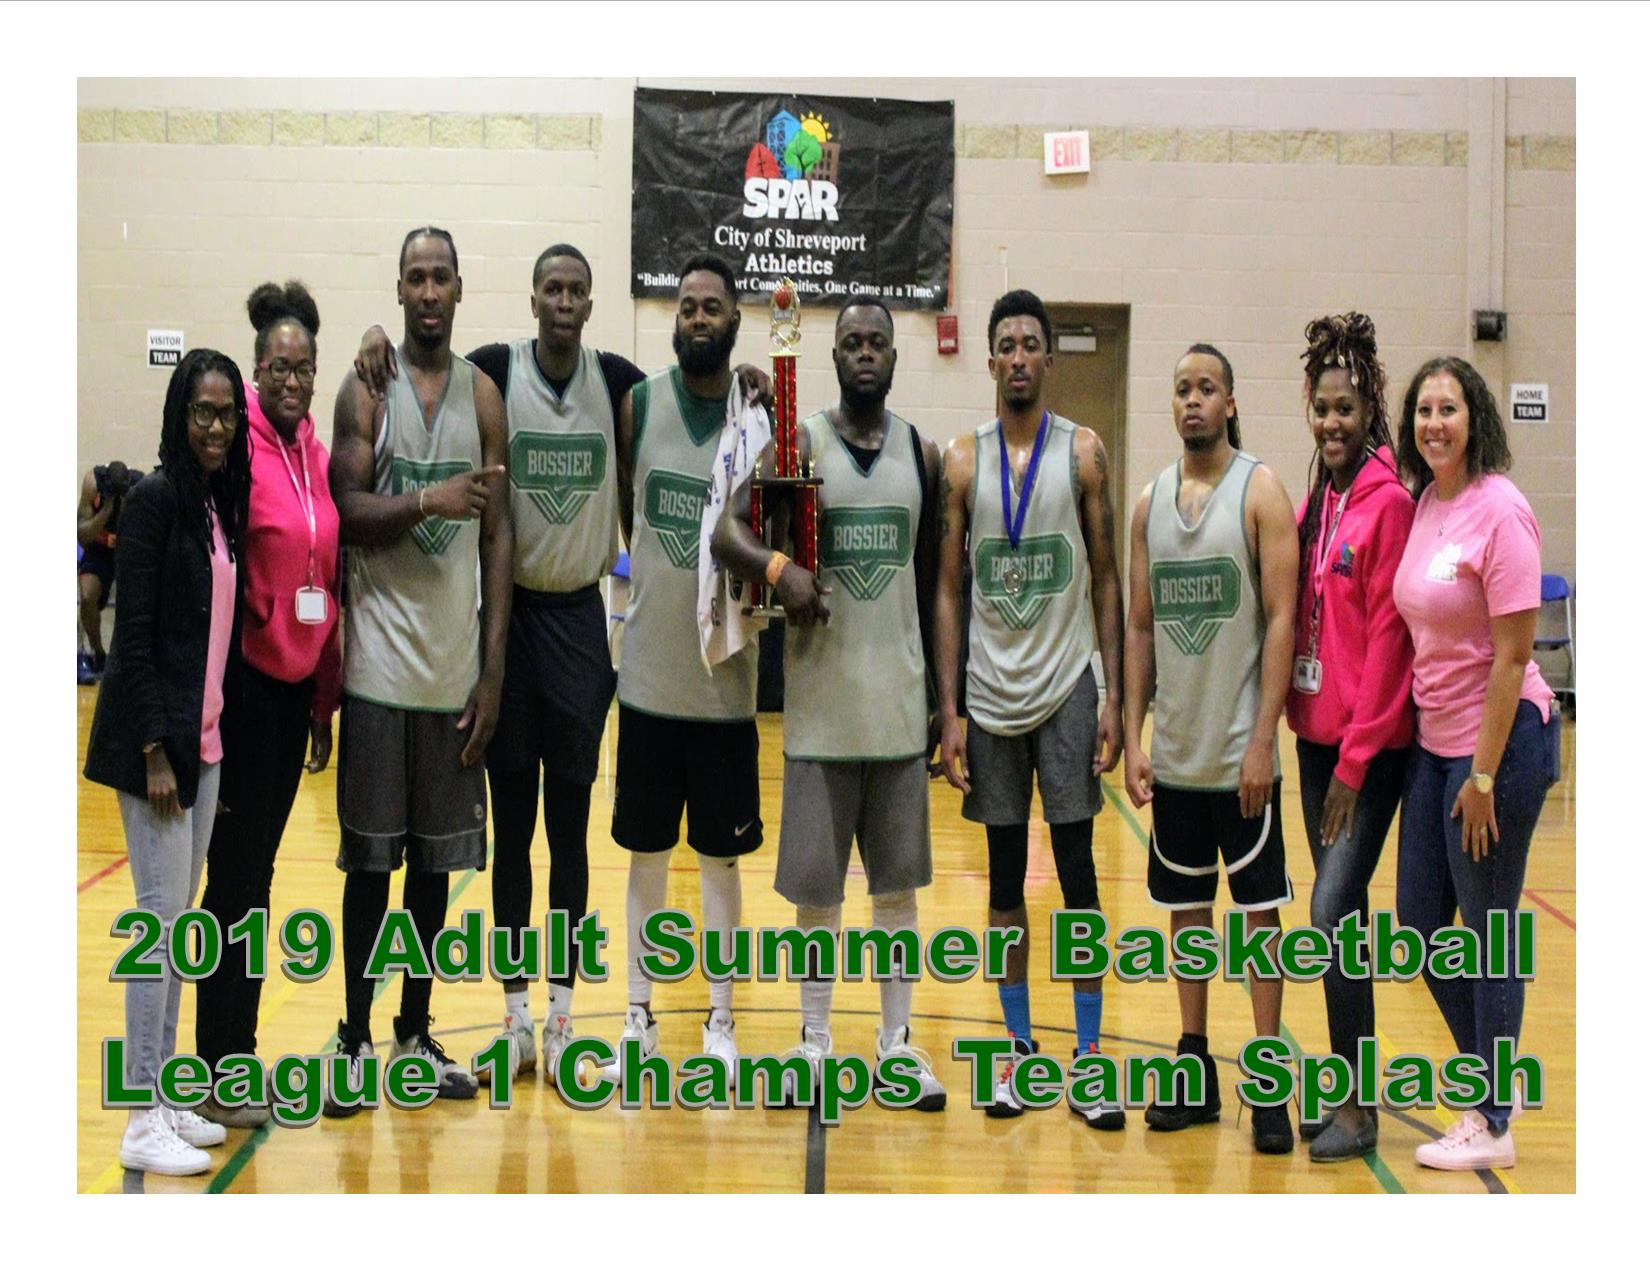 2019 Adult Summer Basketball League 1 Champs